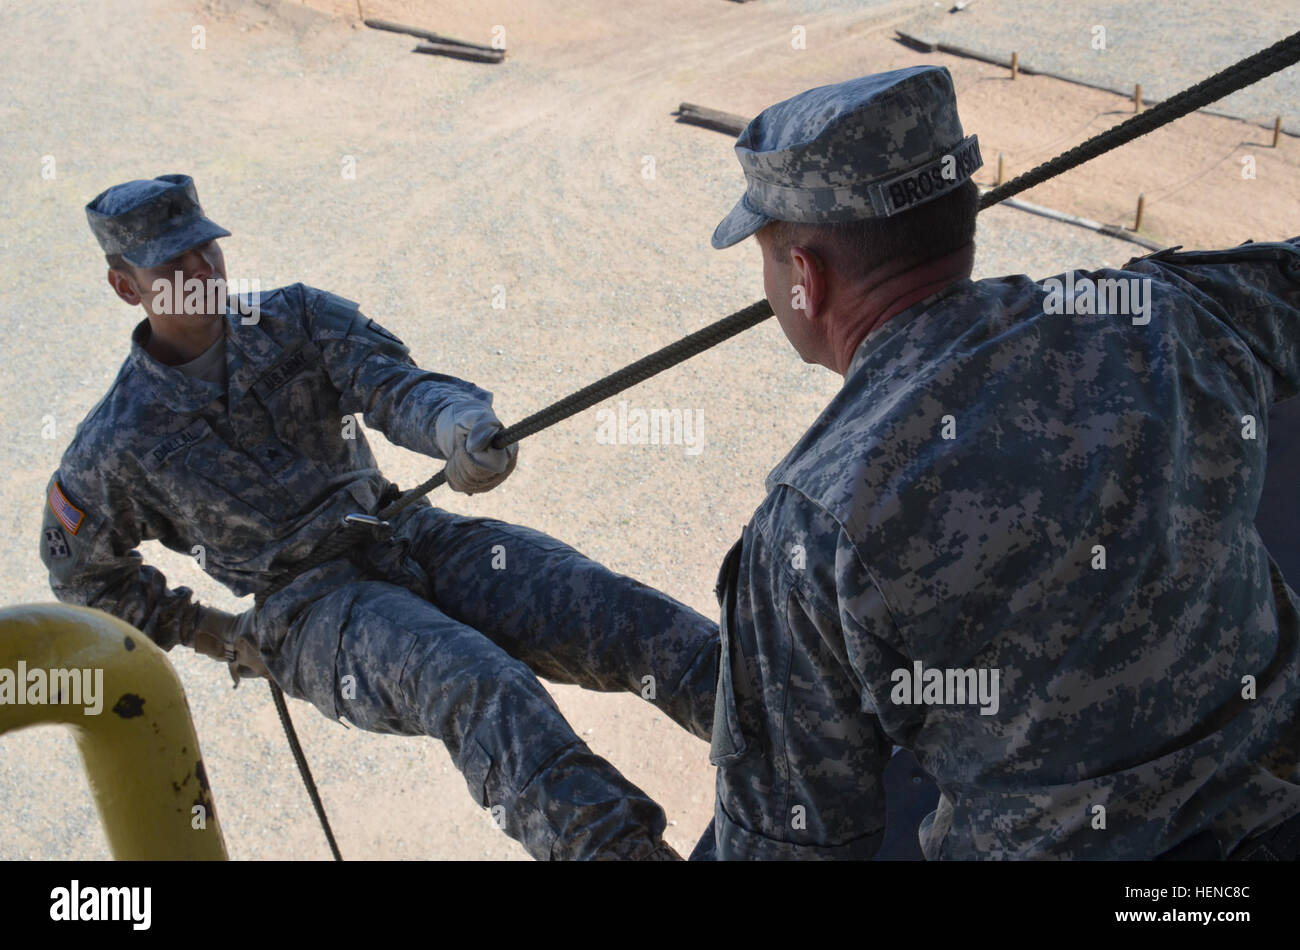 A Soldier rappels off a tower during training on Fort Bliss, Texas, Feb. 27. Soldiers with the 32nd Army Air and - Stock Image